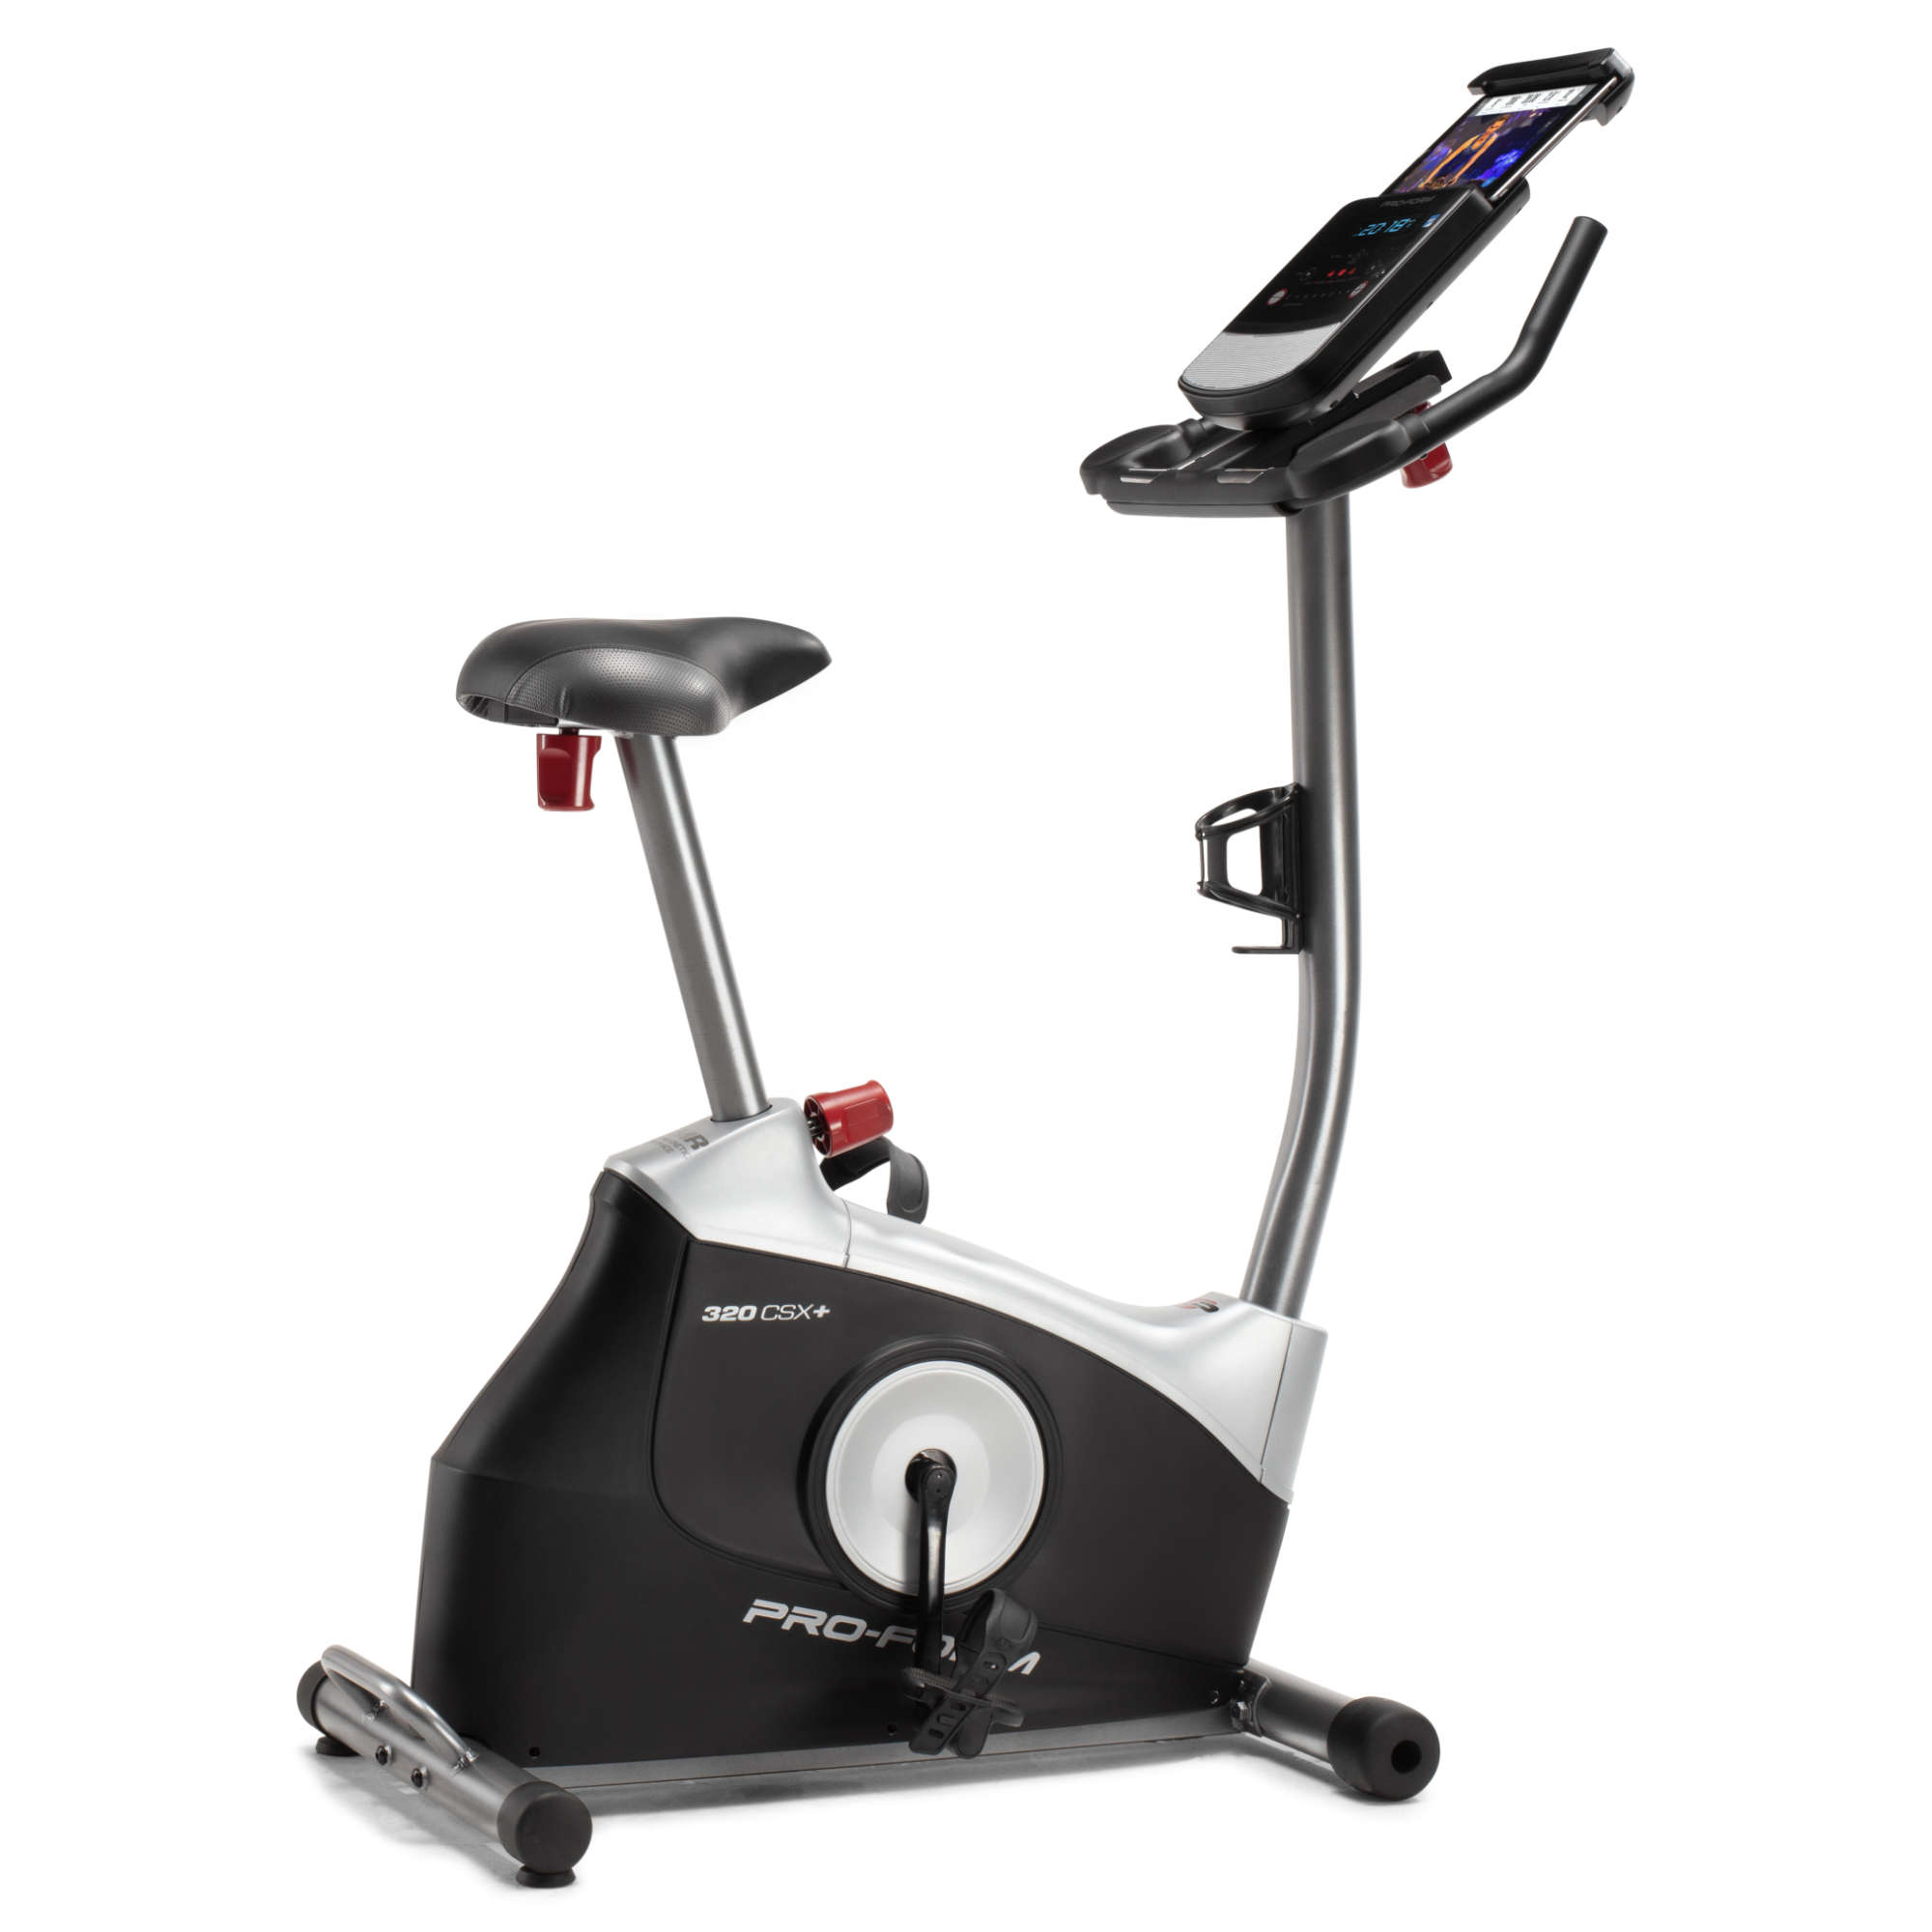 ProForm 320 CSX+ Exercise Bike